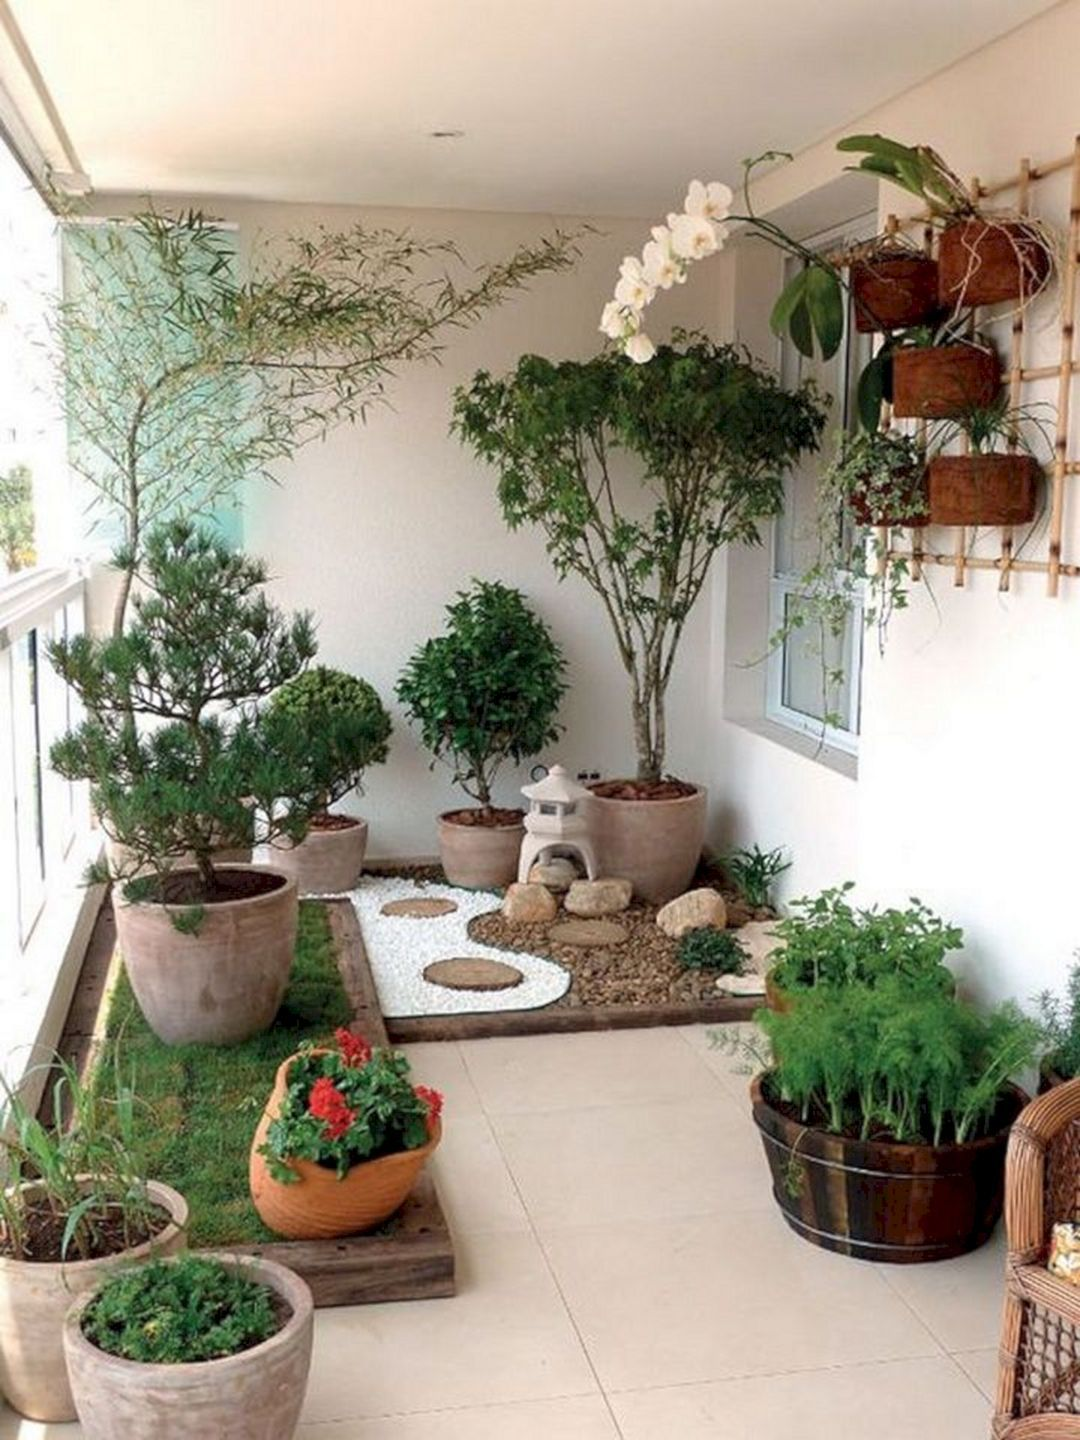 12 INCREDIBLE INDOOR GARDEN DECORATION IDEAS TO MAKE FRESH